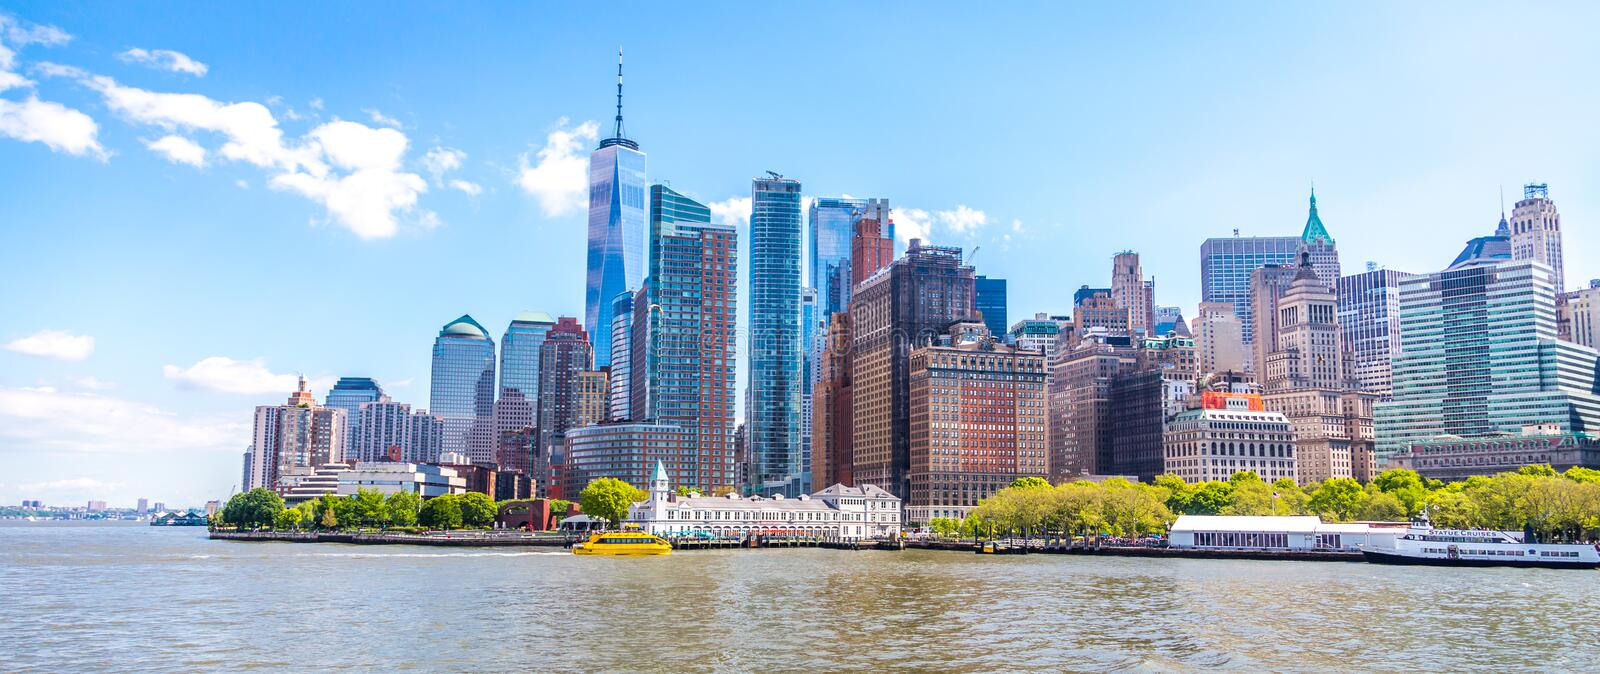 Skyline panorama of downtown Financial District and the Lower Manhattan in New York City, USA stock photos